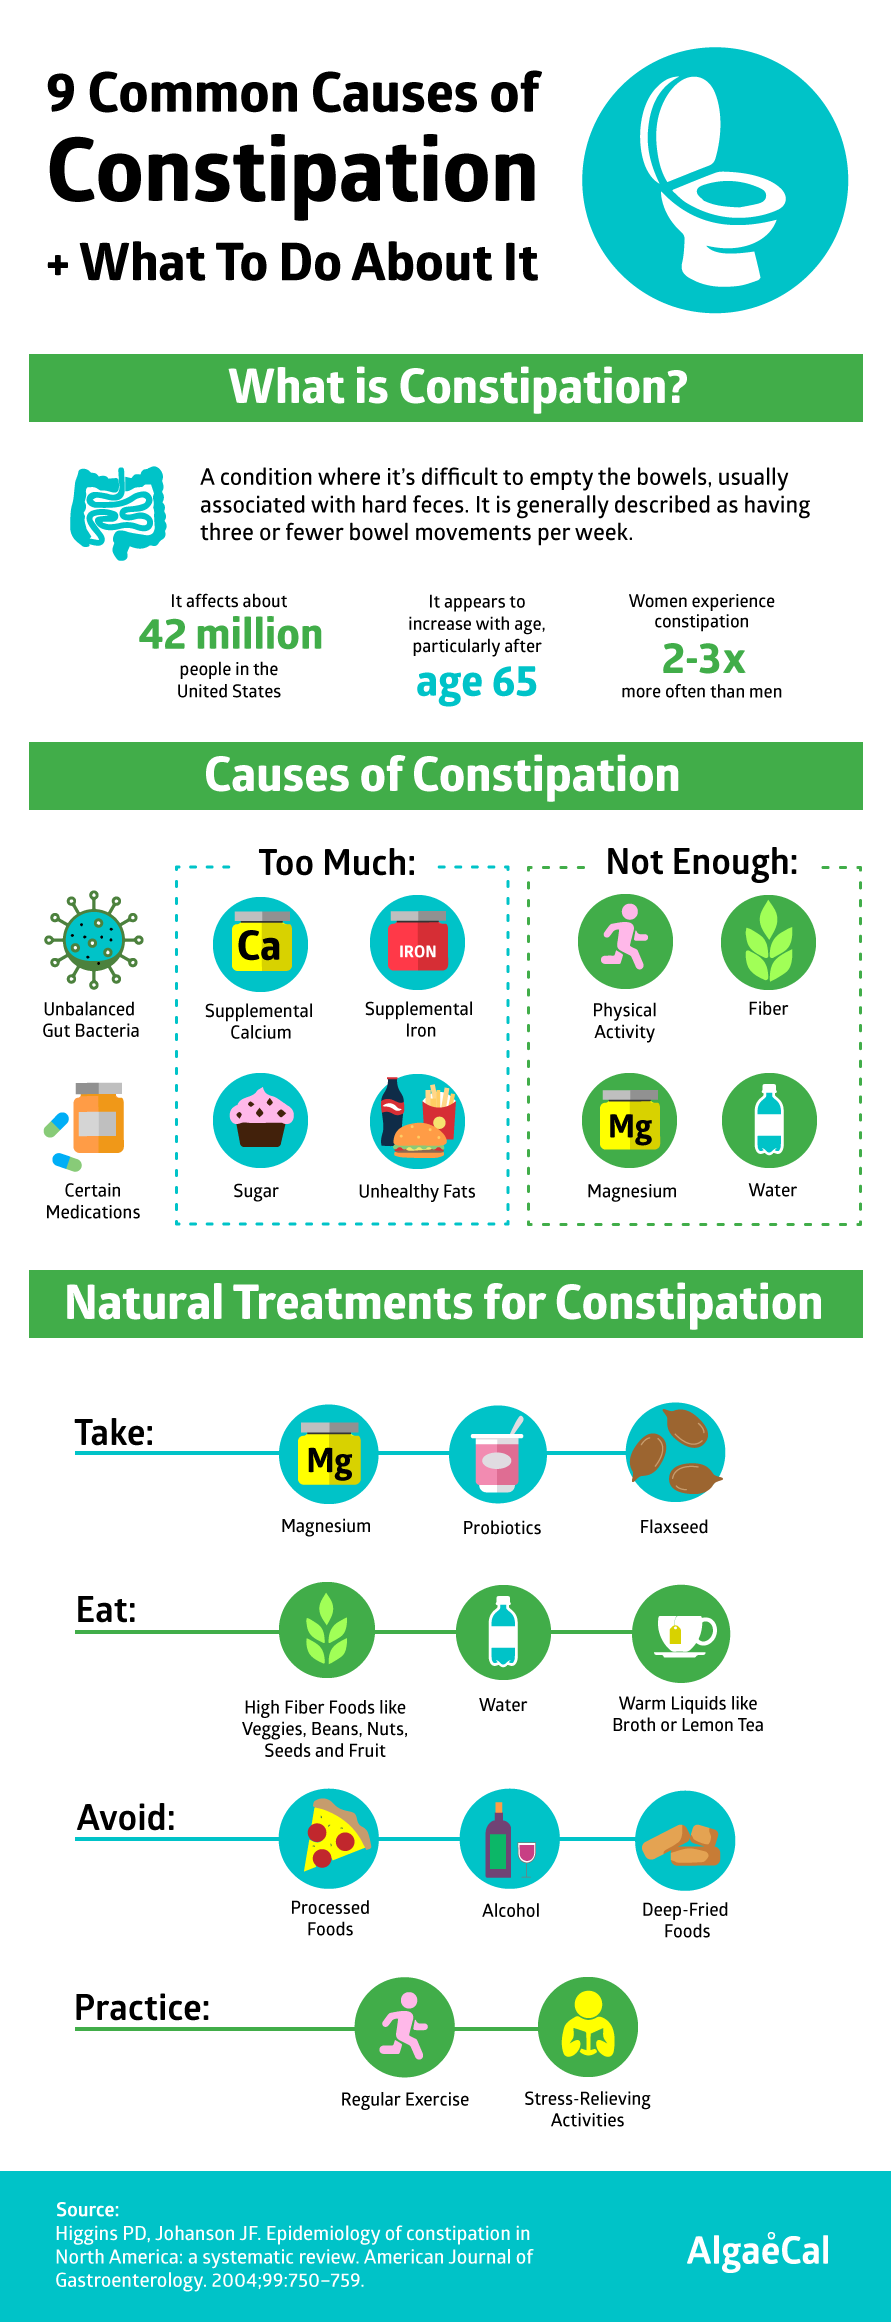 9 Common Causes of Constipation infographic